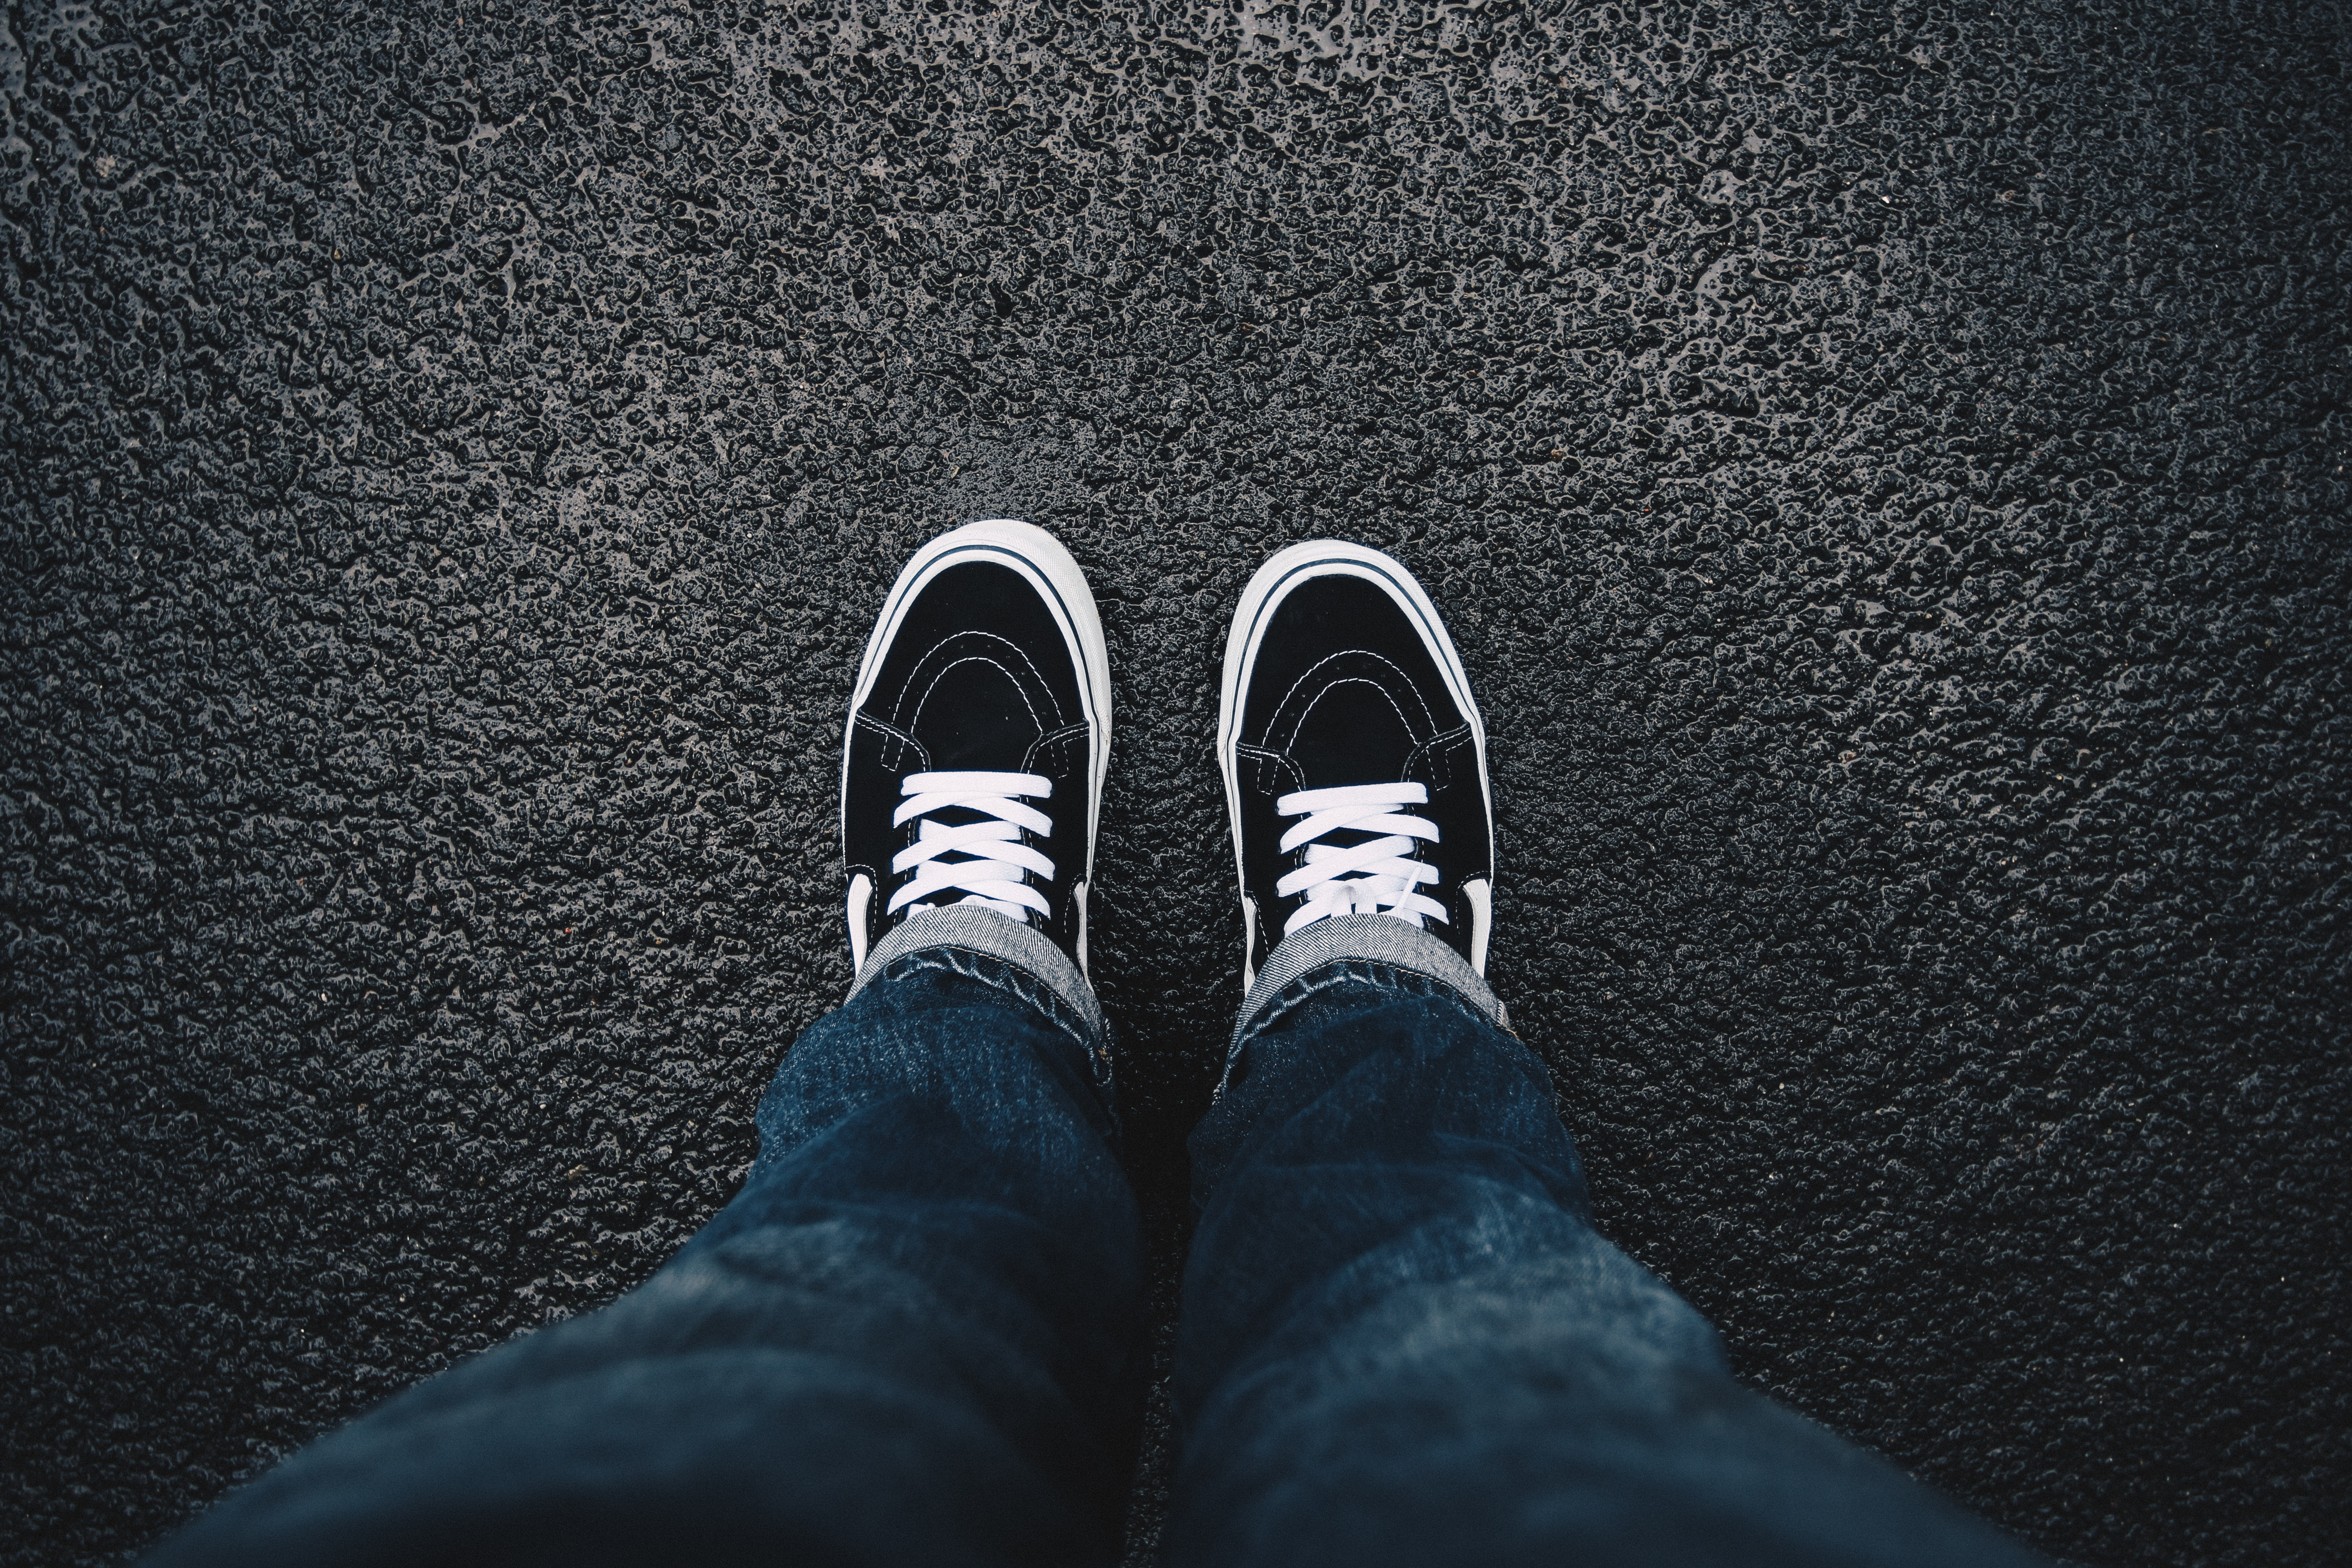 person wearing black sneakers standing on black surface